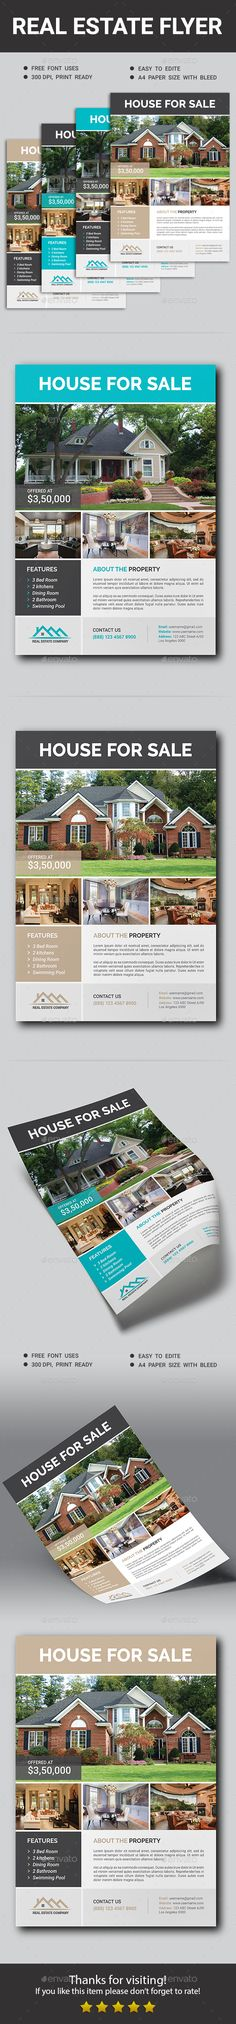 #Real Estate #Flyer - #Corporate Flyers Download here: https://graphicriver.net/item/real-estate-flyer/19457628?ref=alena994